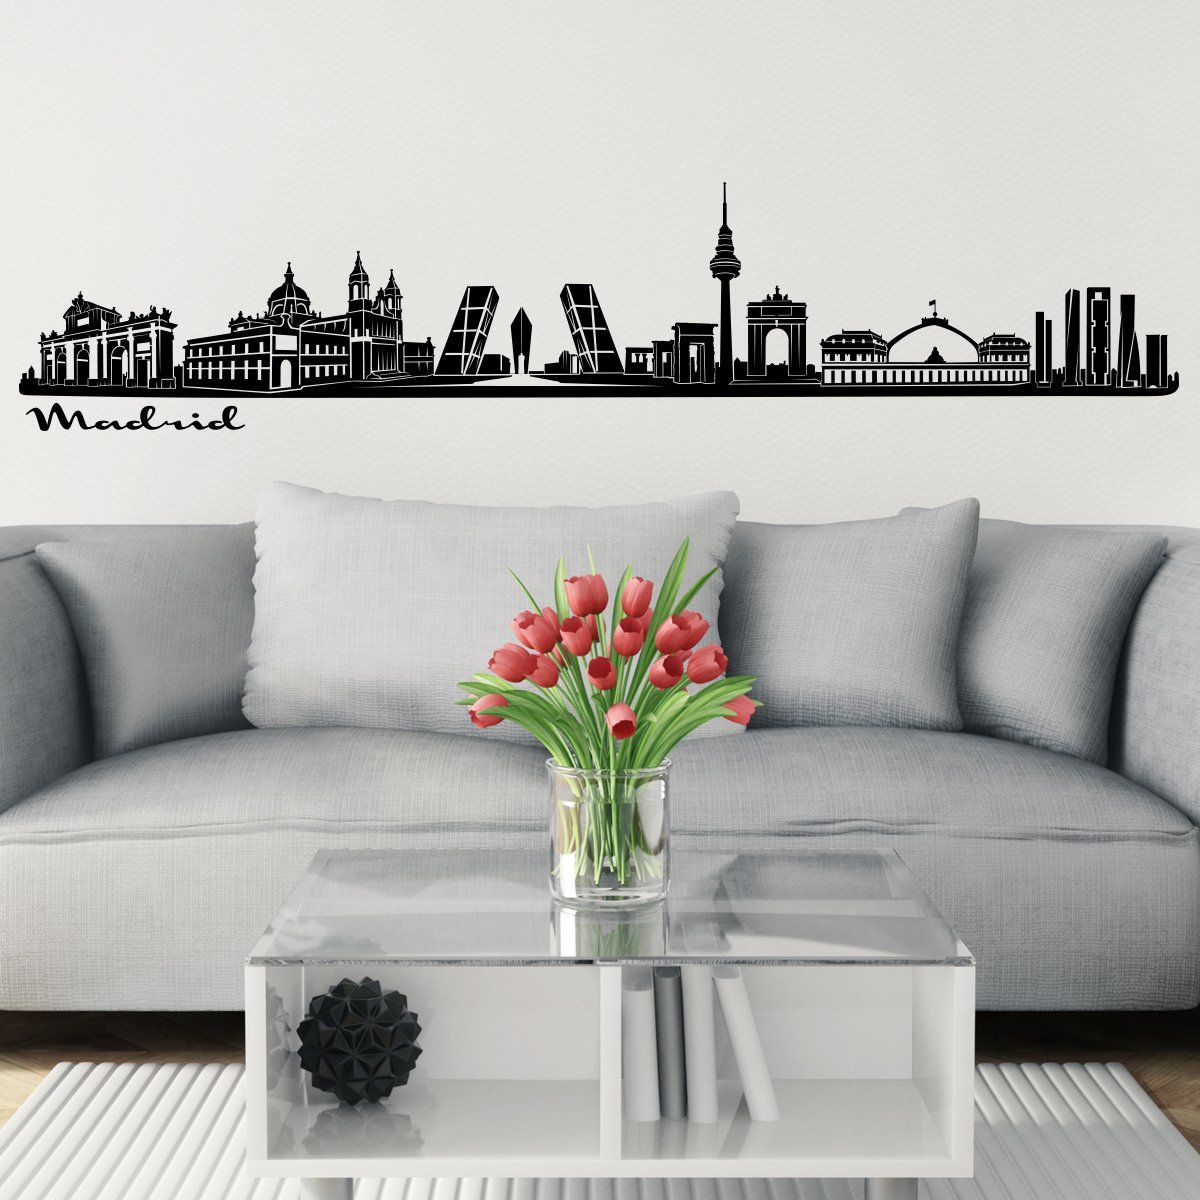 Wandkings Skyline Wall Sticker Wall Decal - 48 x 10 inch in Black - Your City Selectable - Madrid